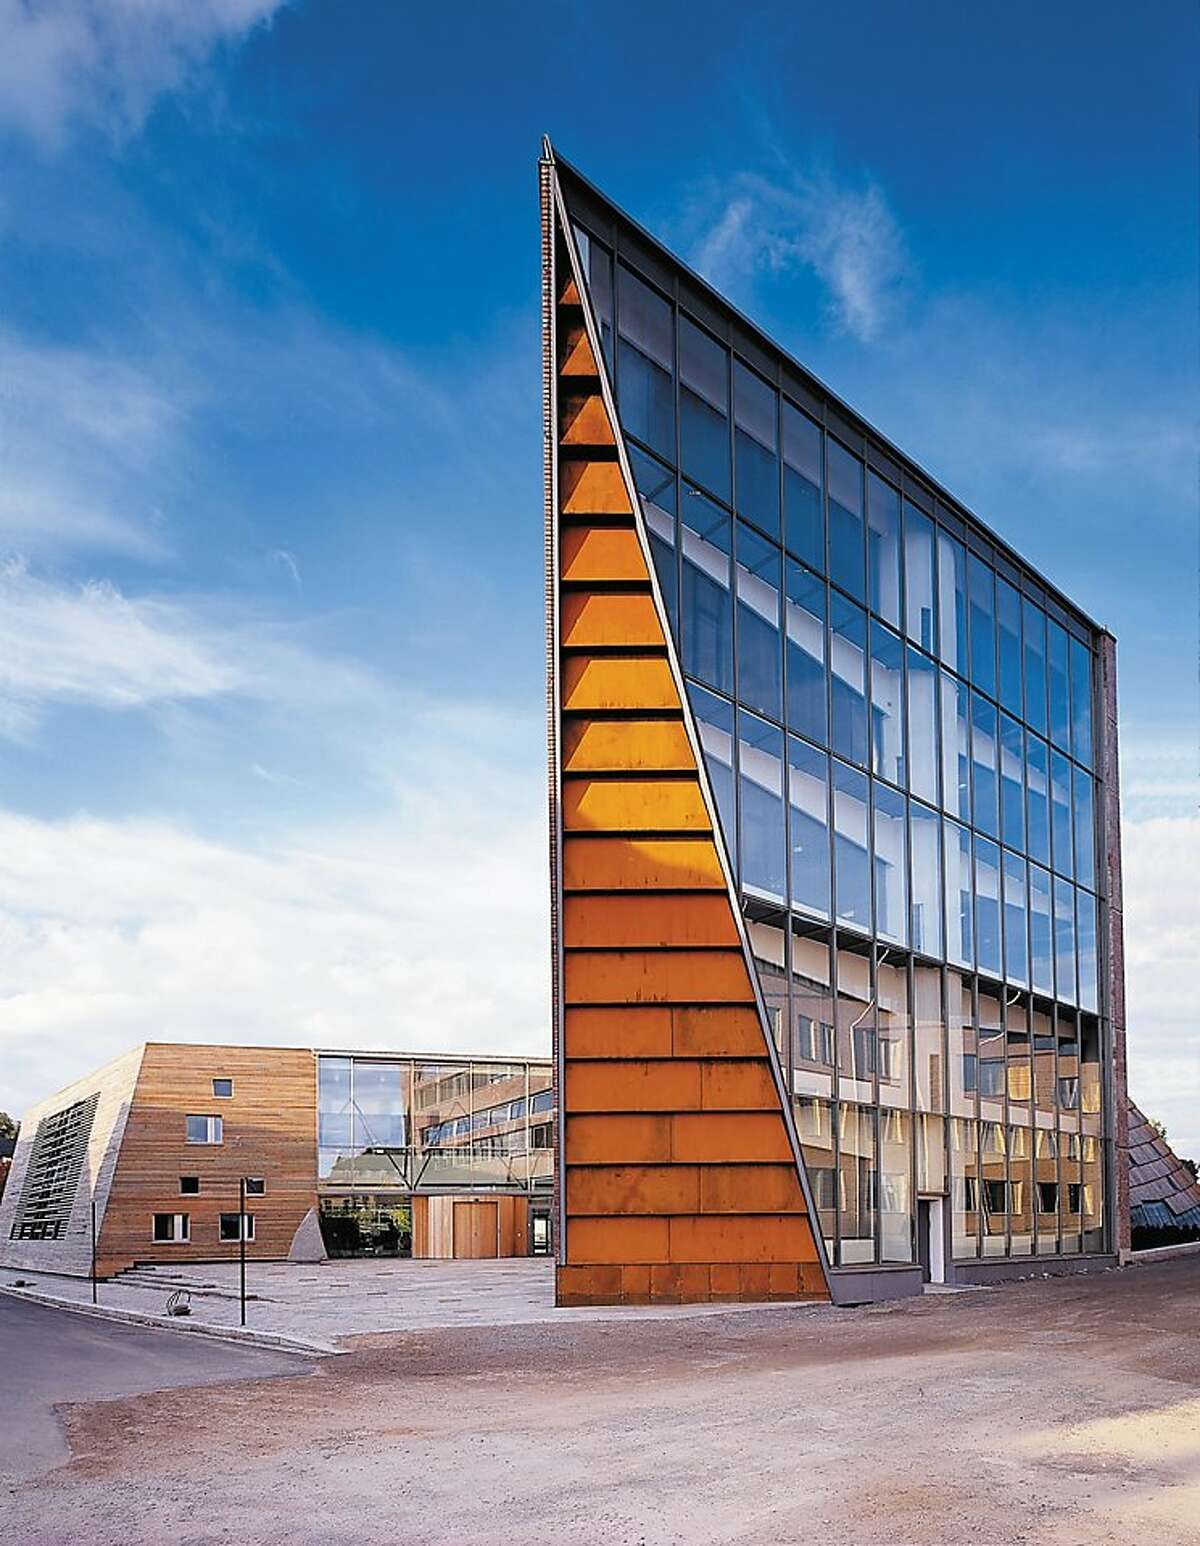 The Town Hall in Hamar, Norway is designed by Snohetta, the architecture firm selected to design the new wing of SFMOMA